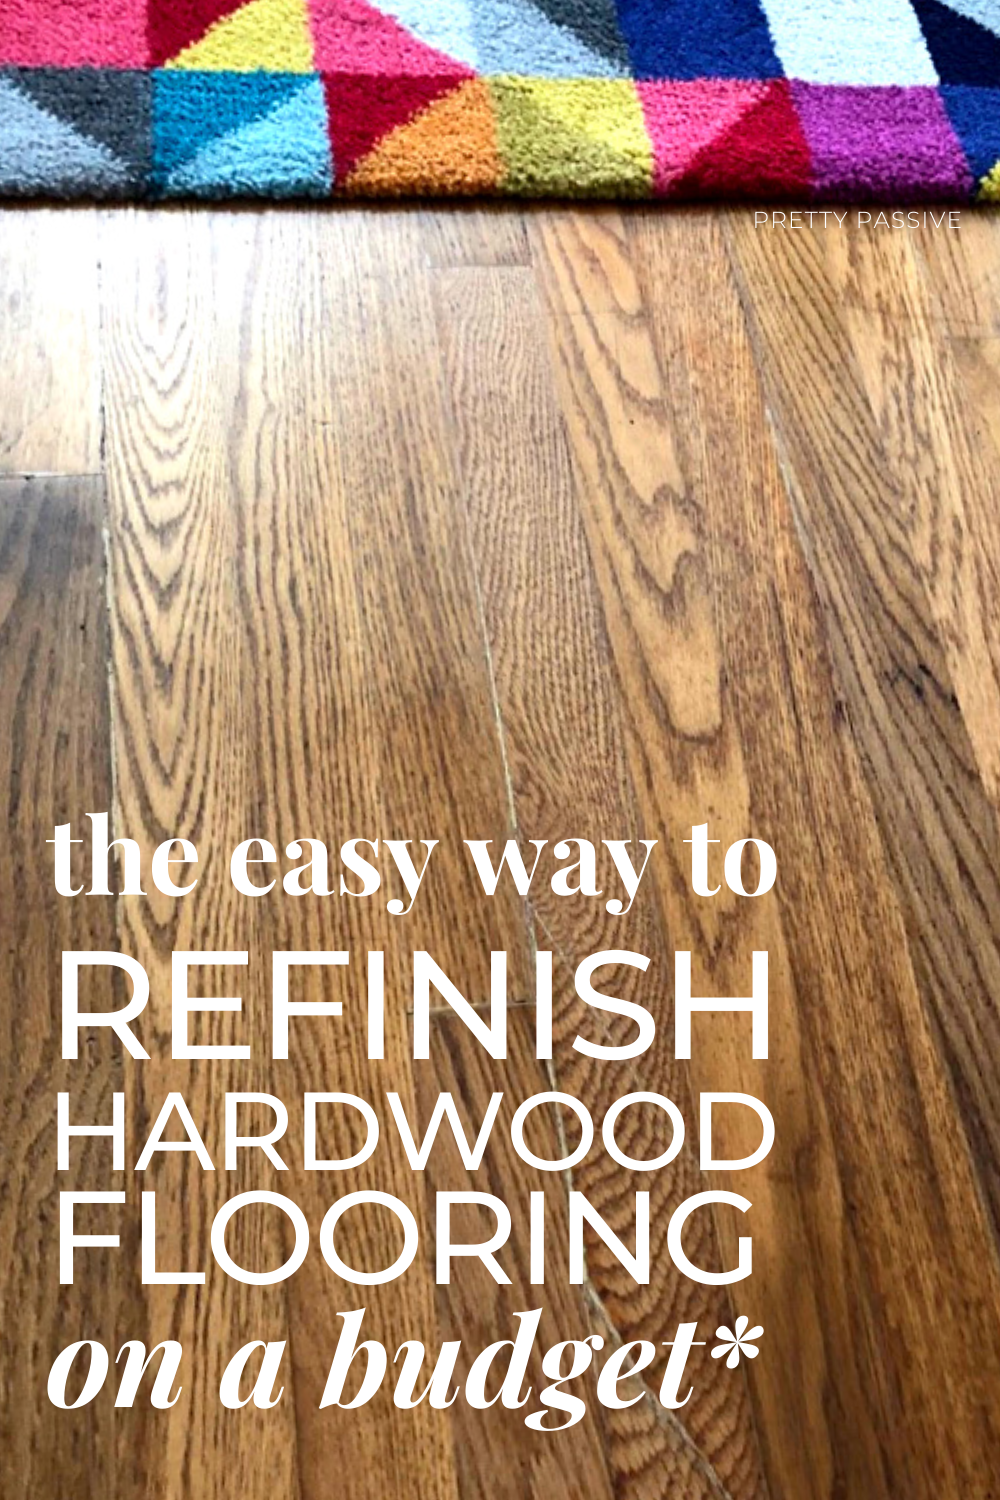 frugal home projects for working families with a fixer upper -the easy way to refinish hardwood flooring on a budget